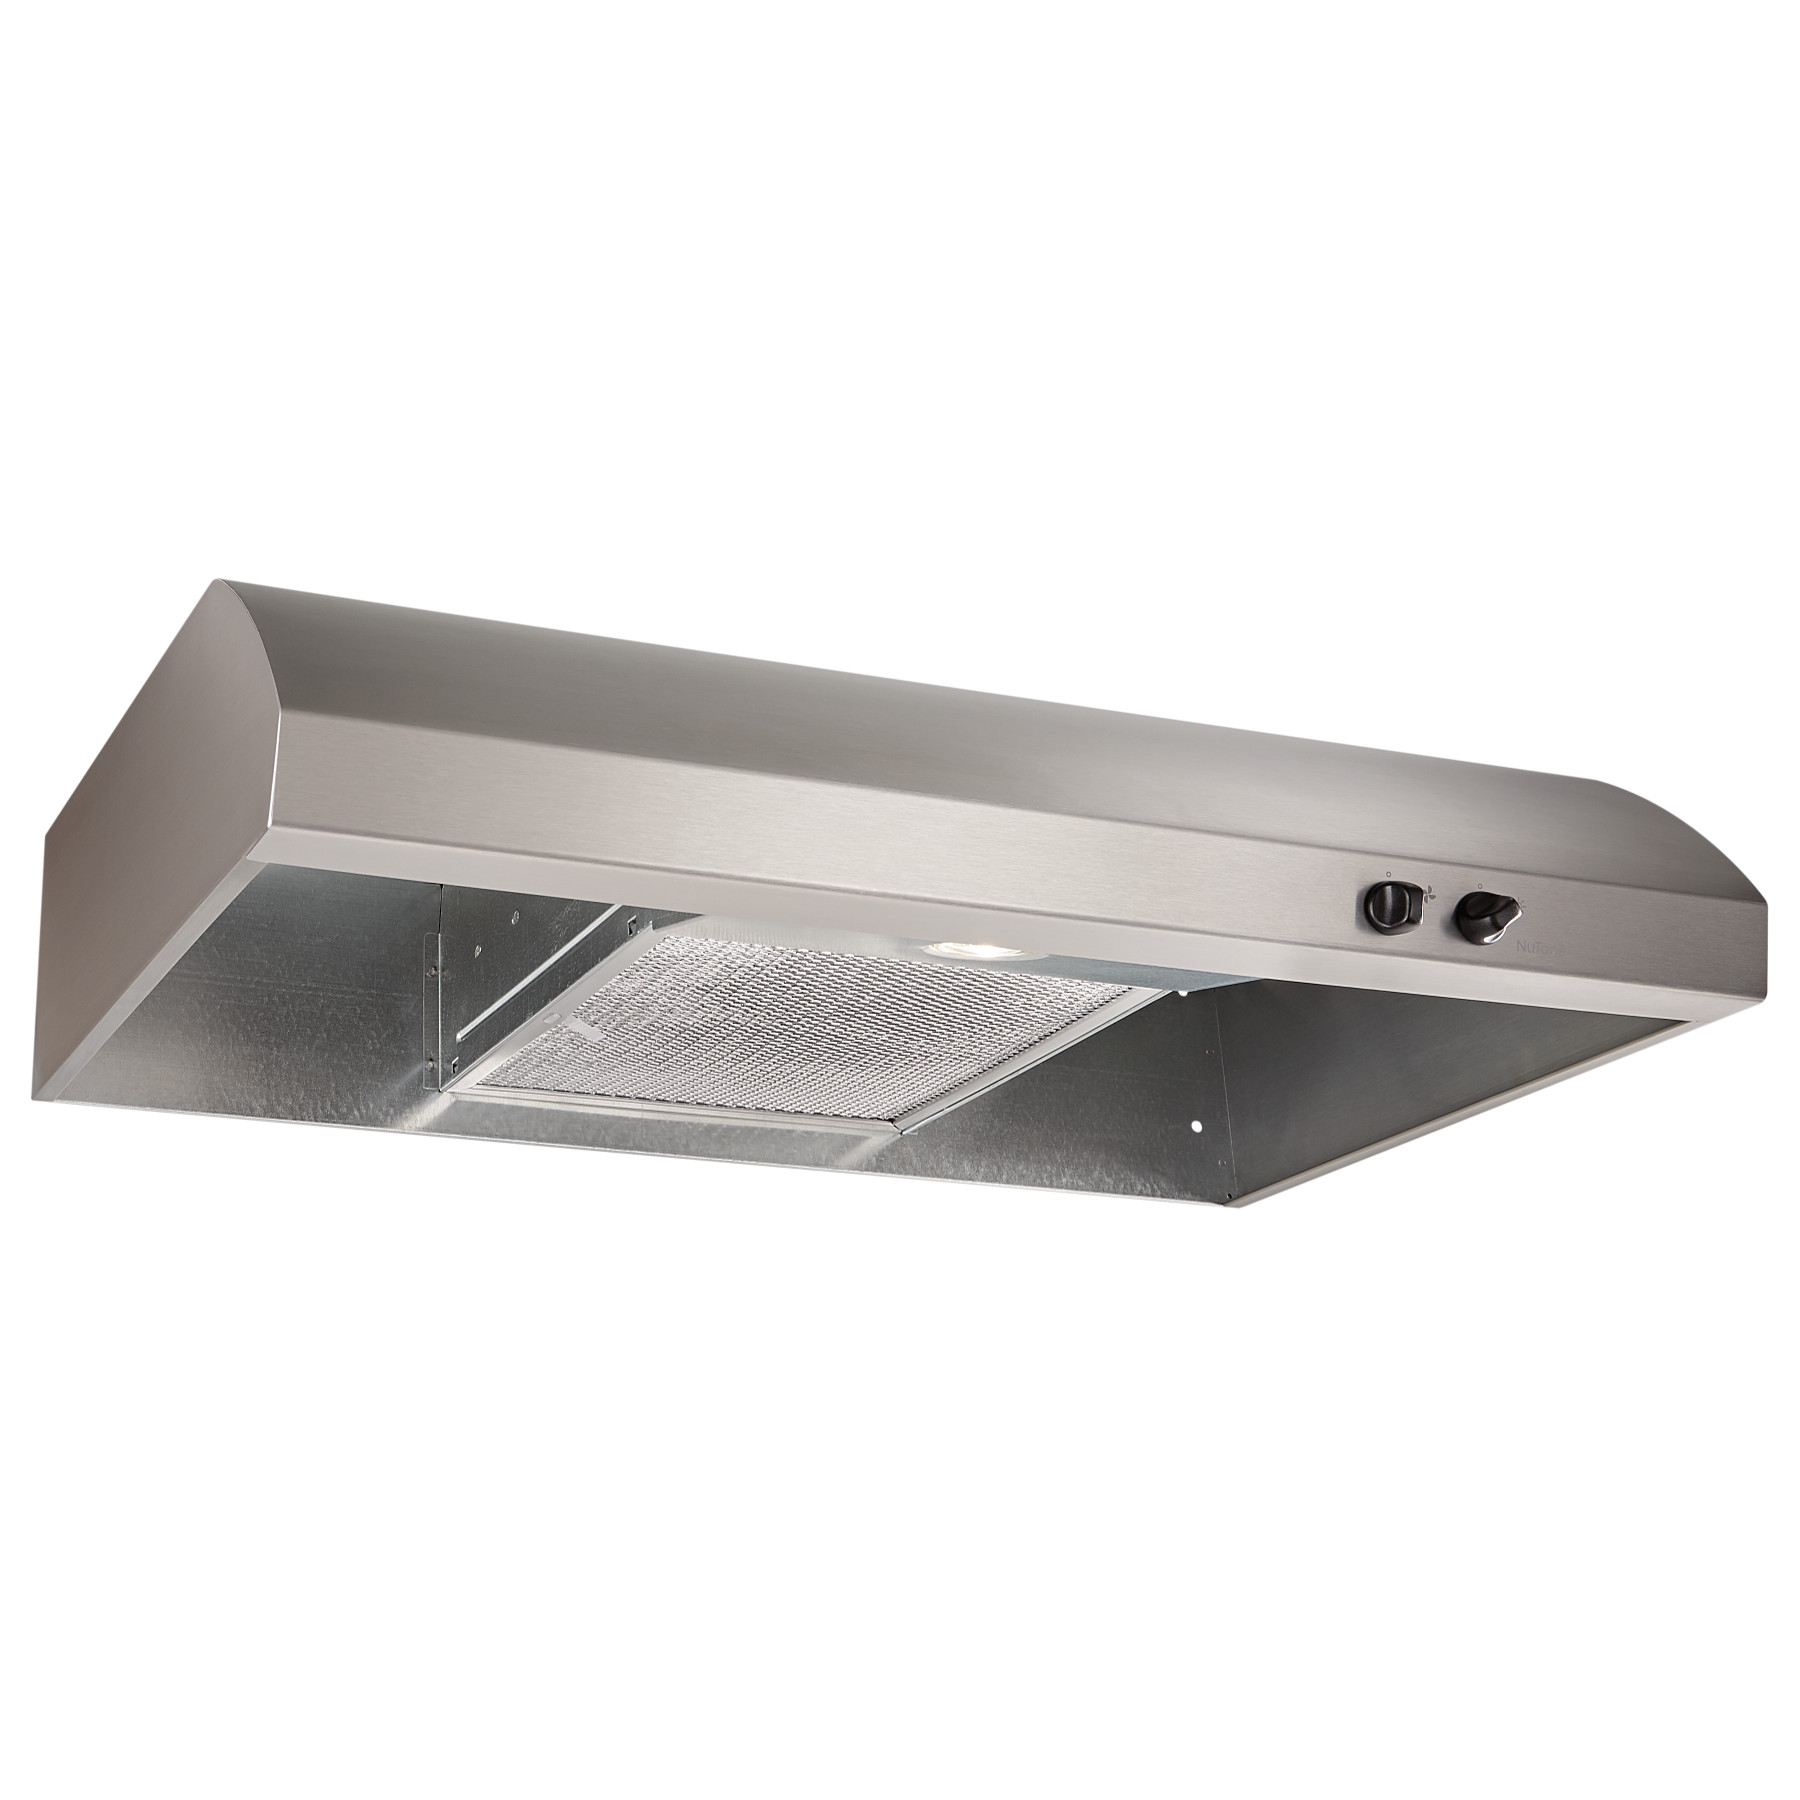 NuTone® 30-Inch 4-Way Convertible Under-Cabinet Range Hood, 220 CFM, Stainless Steel